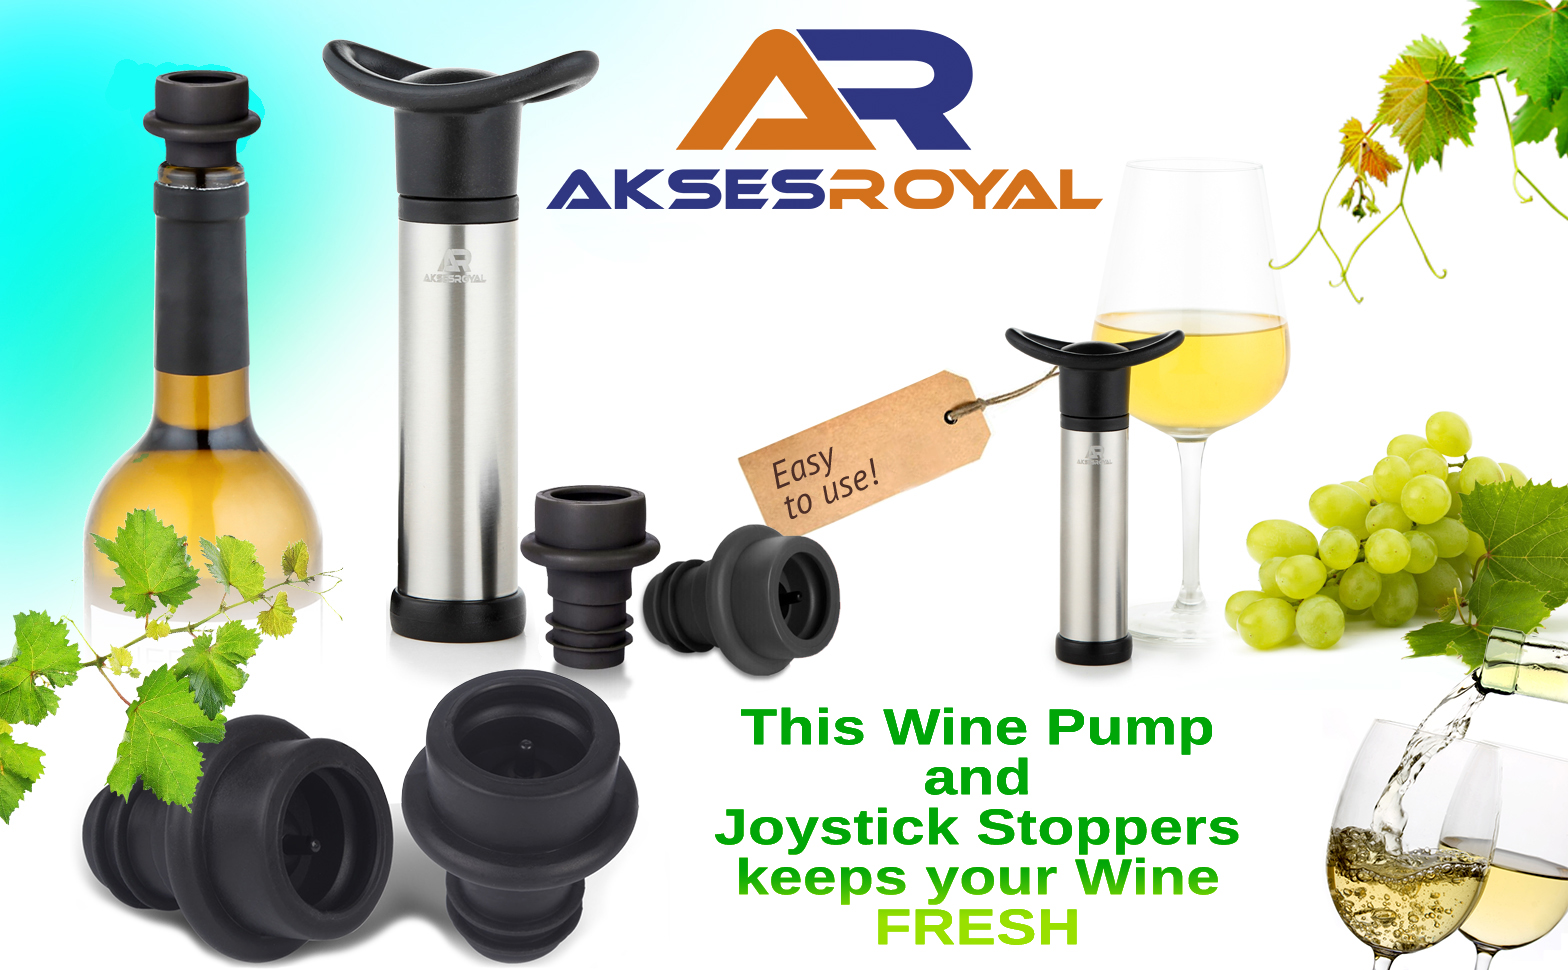 Wine Saver Vacuum Pump Preserver from AKSESROYAL with 4 Joystick Air Bottle Stoppers